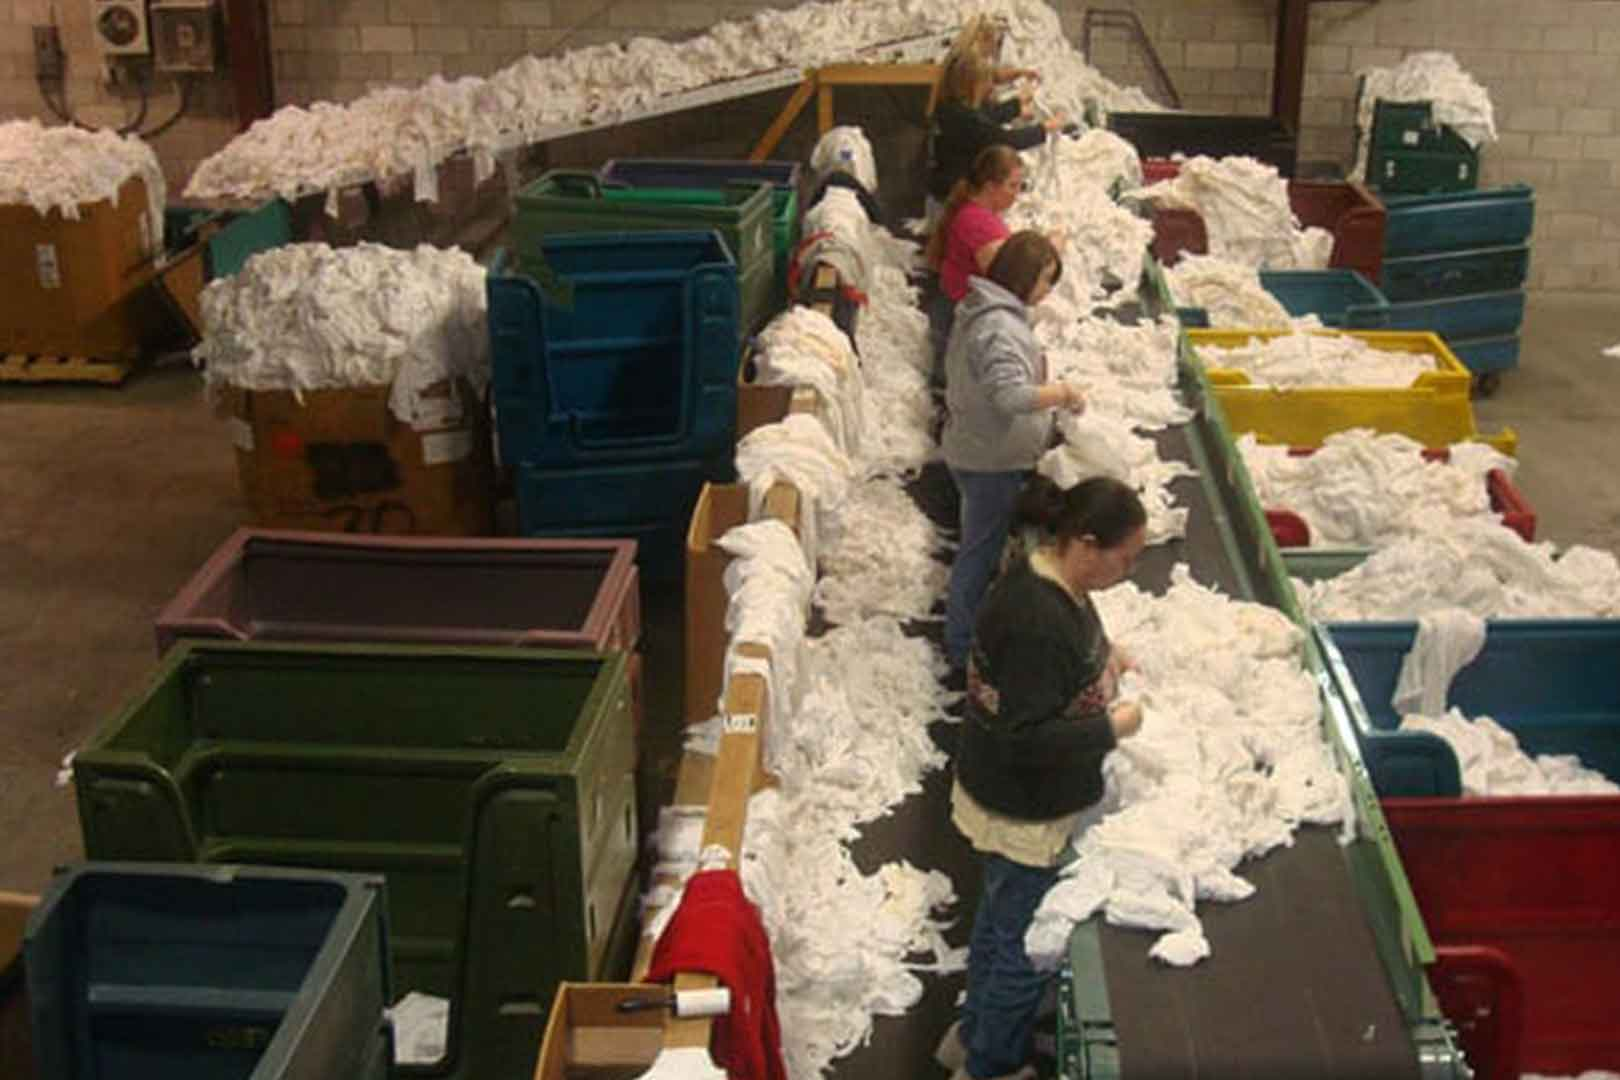 assembly line distributing white rags